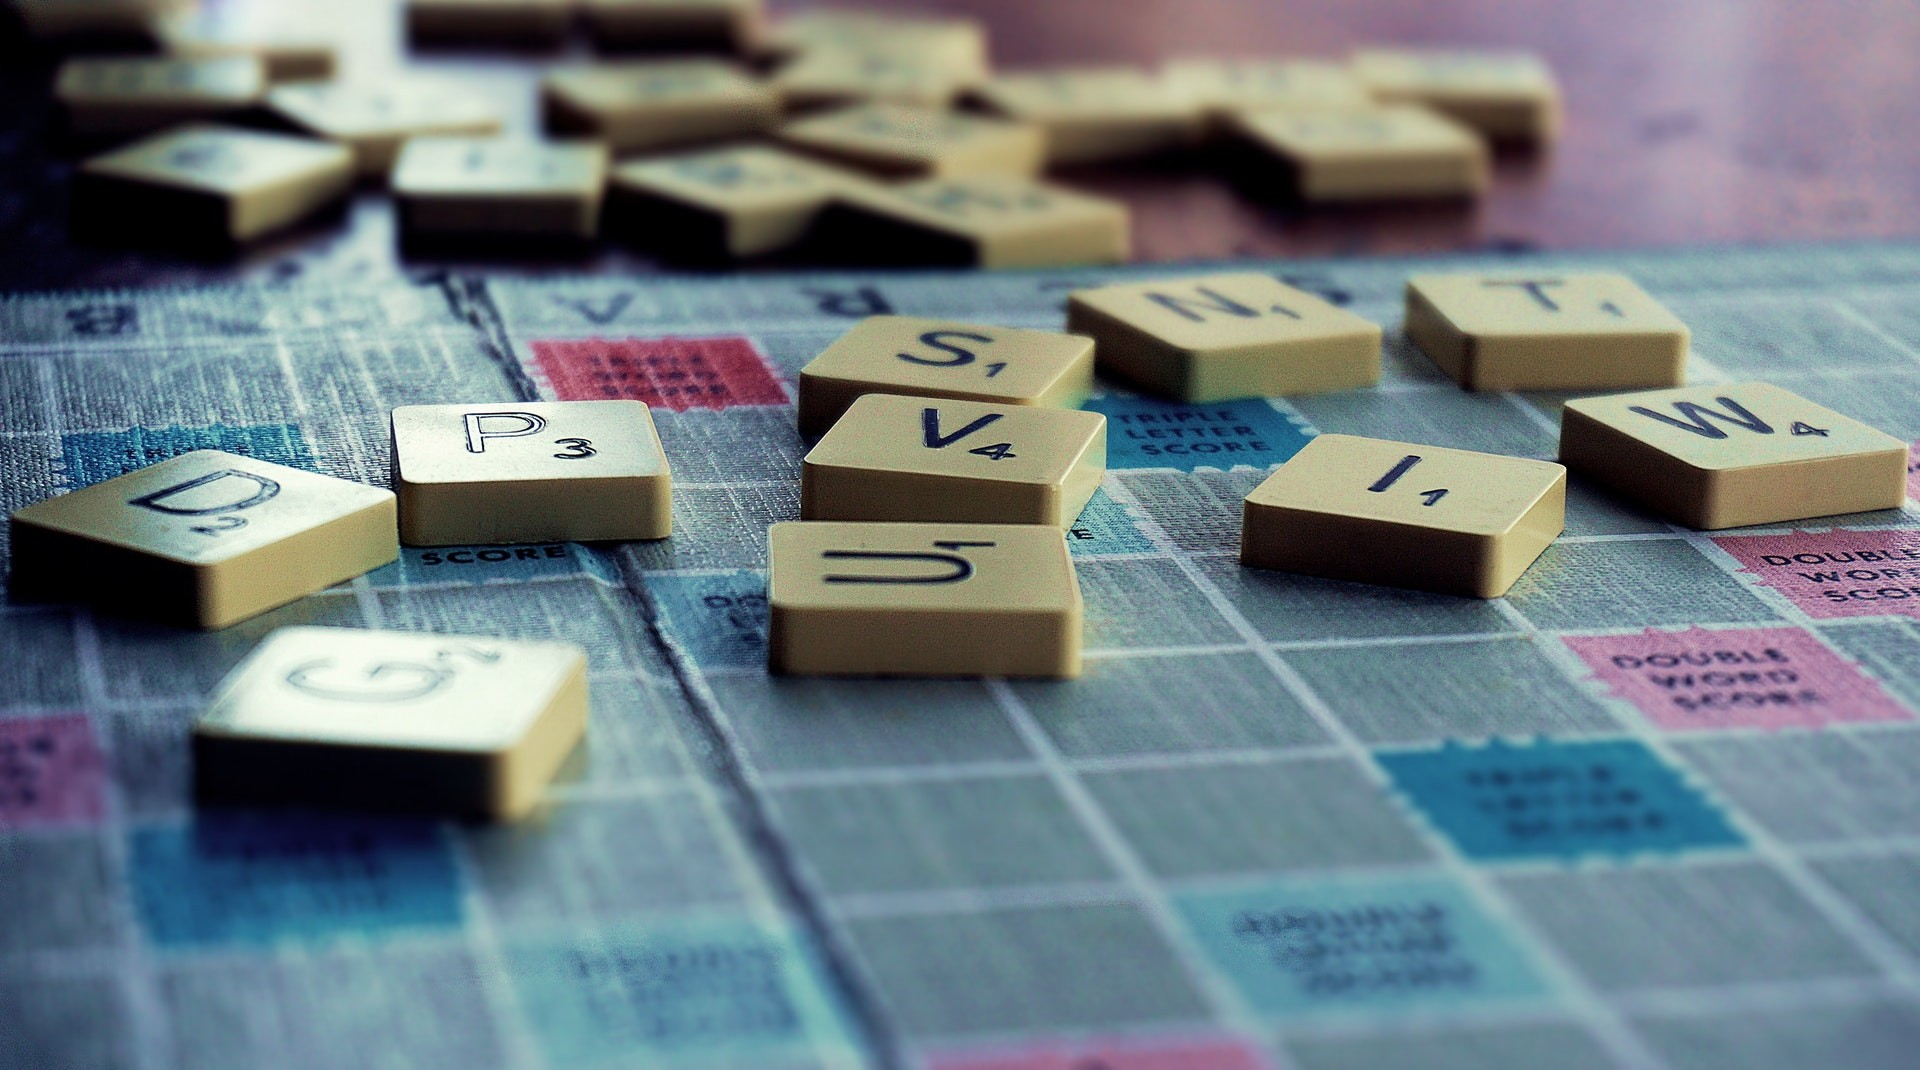 Picture of scrabble board with tiles on it.